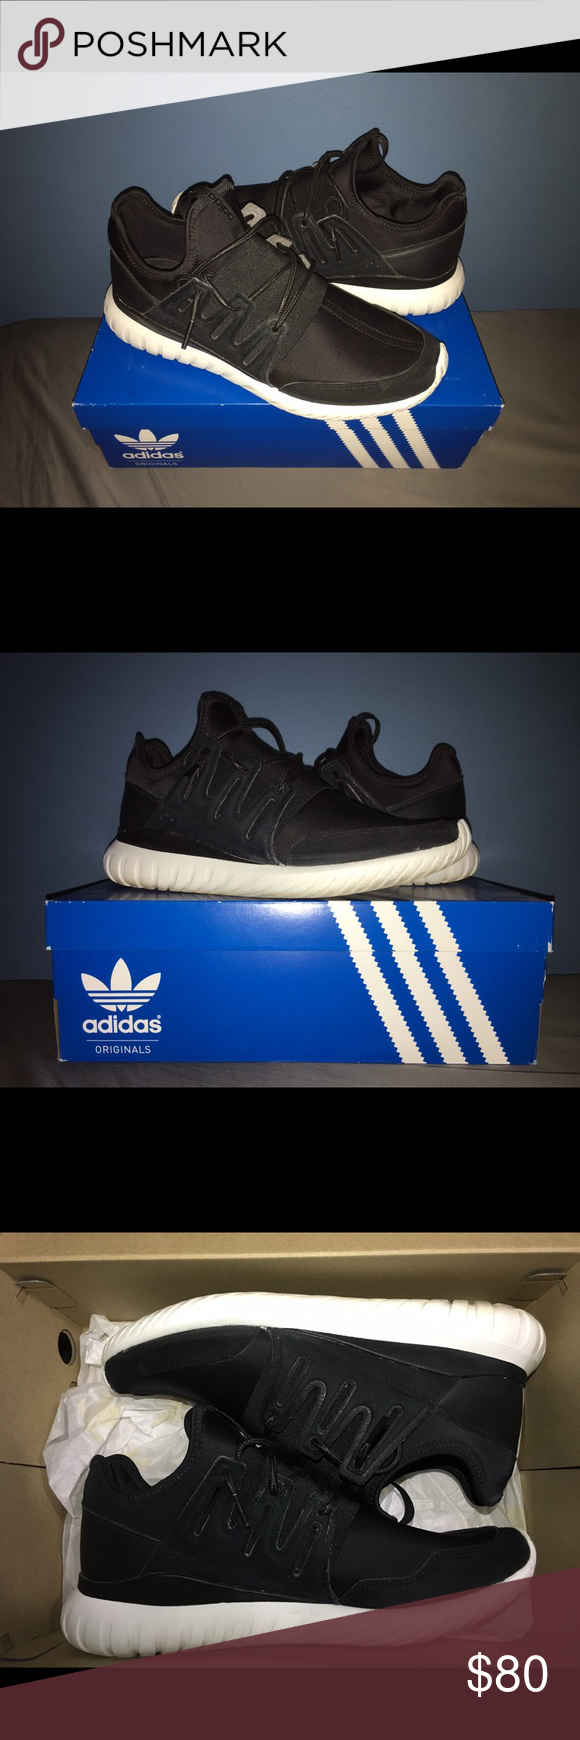 Adidas Original Tubular Radial Worn Once. In Good Shape Adidas Shoes Sneakers